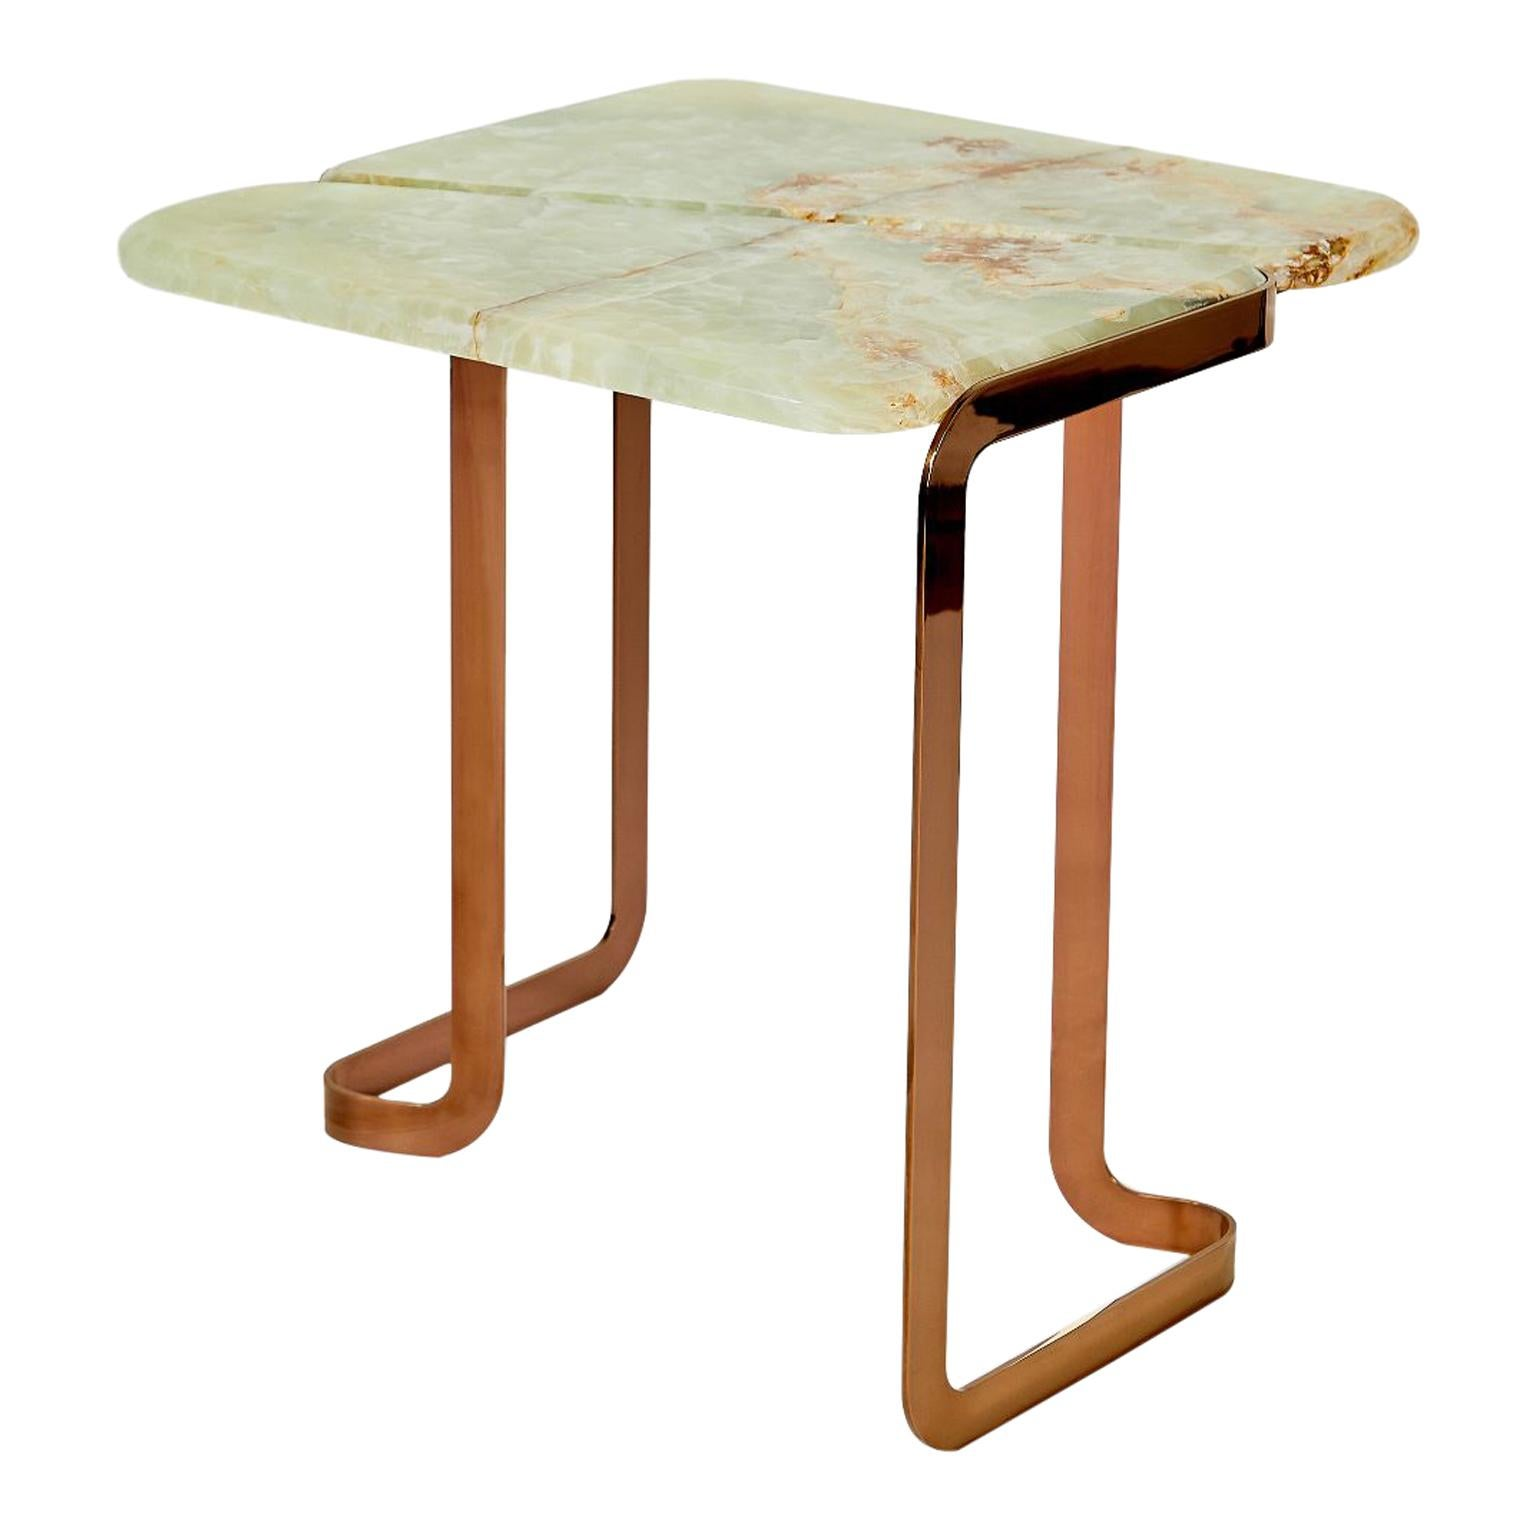 Onyx Tigris Side Table Onyx by Marble Balloon